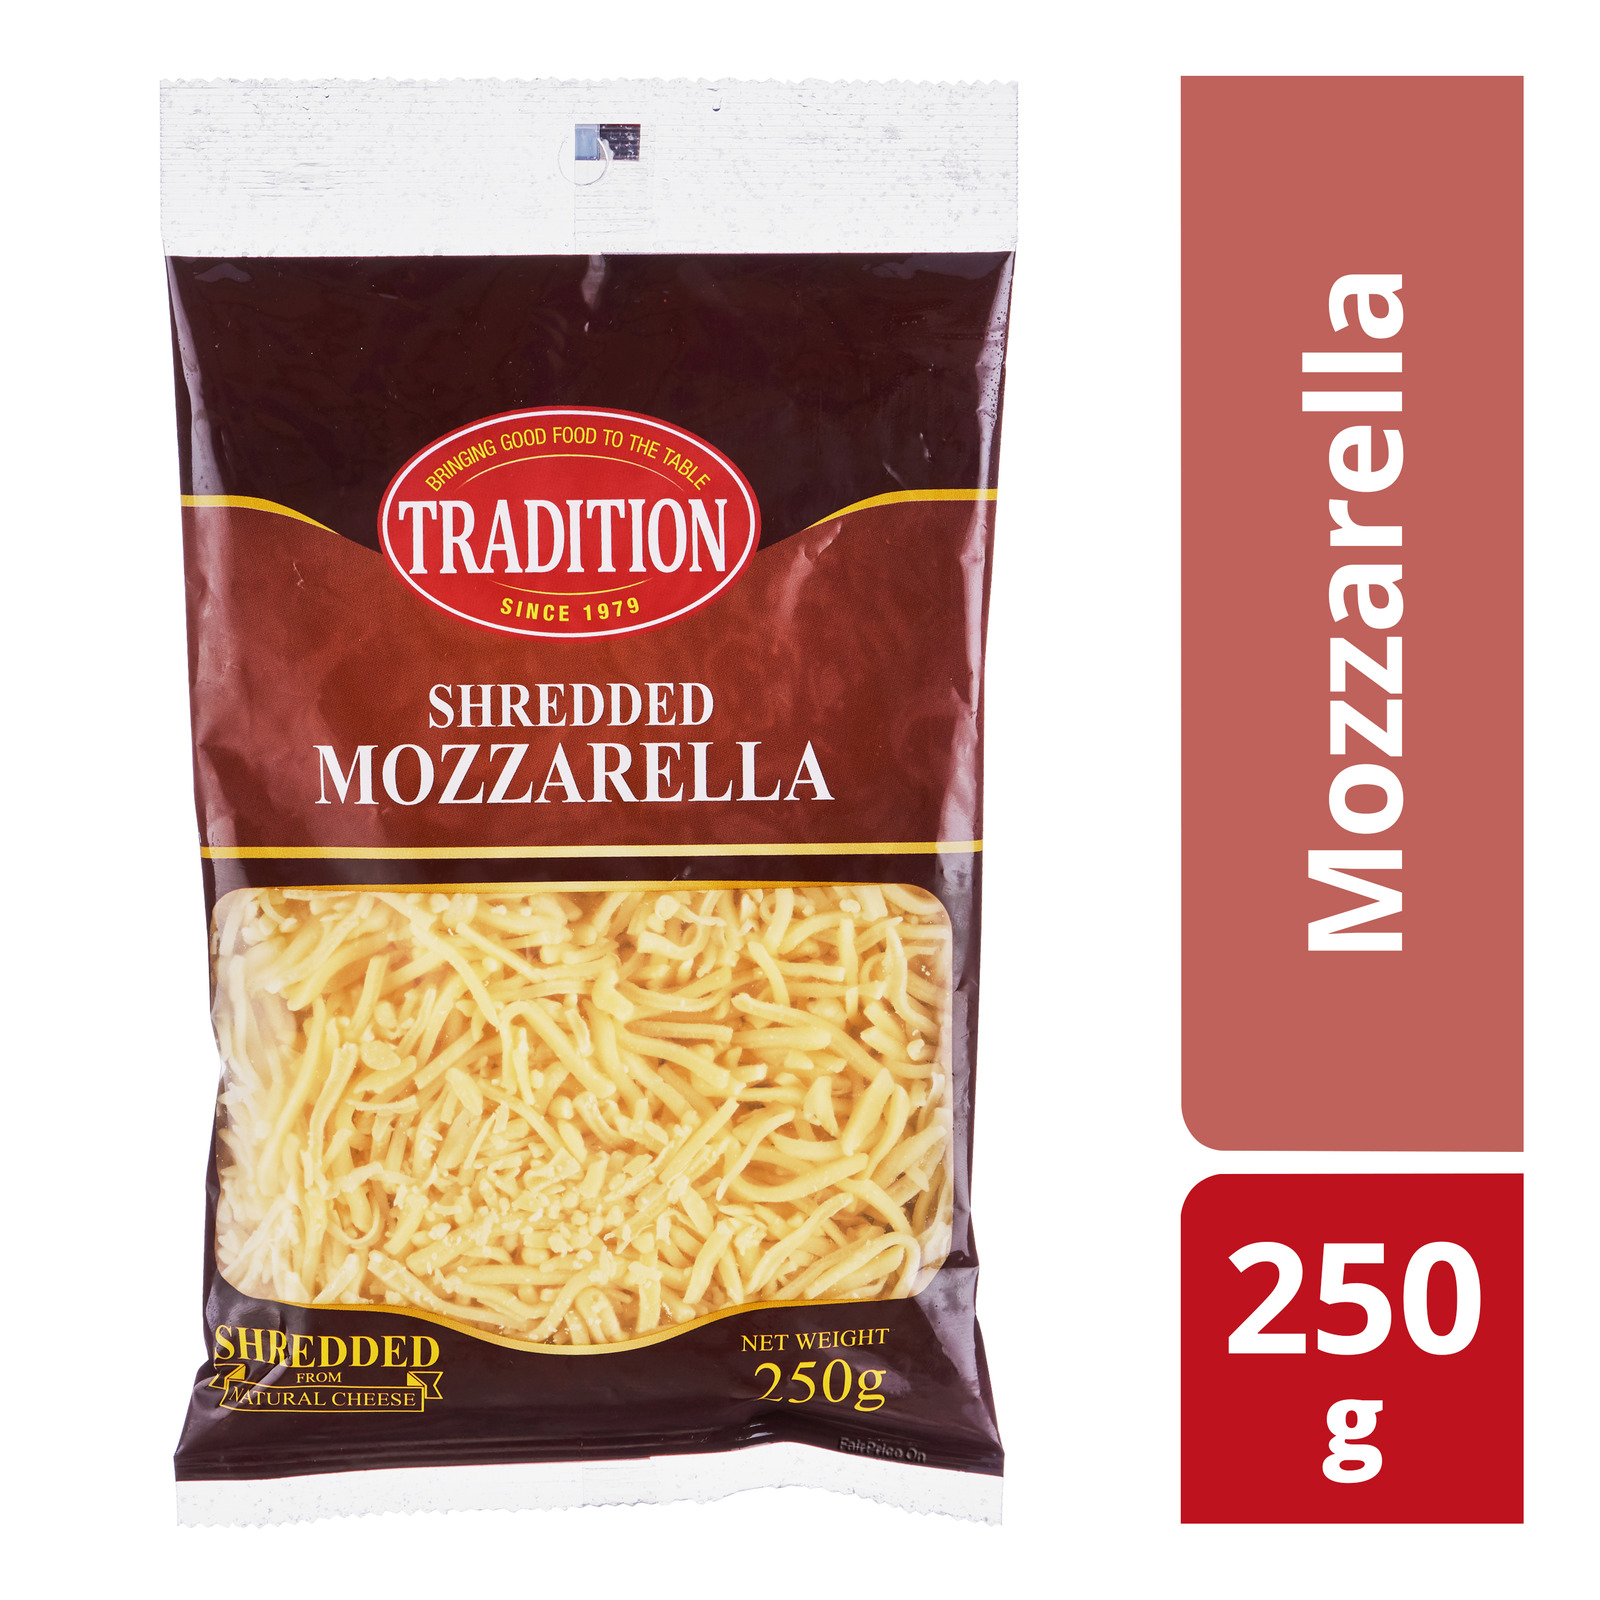 TRADITION Shredded Mozzarella Cheese 250g